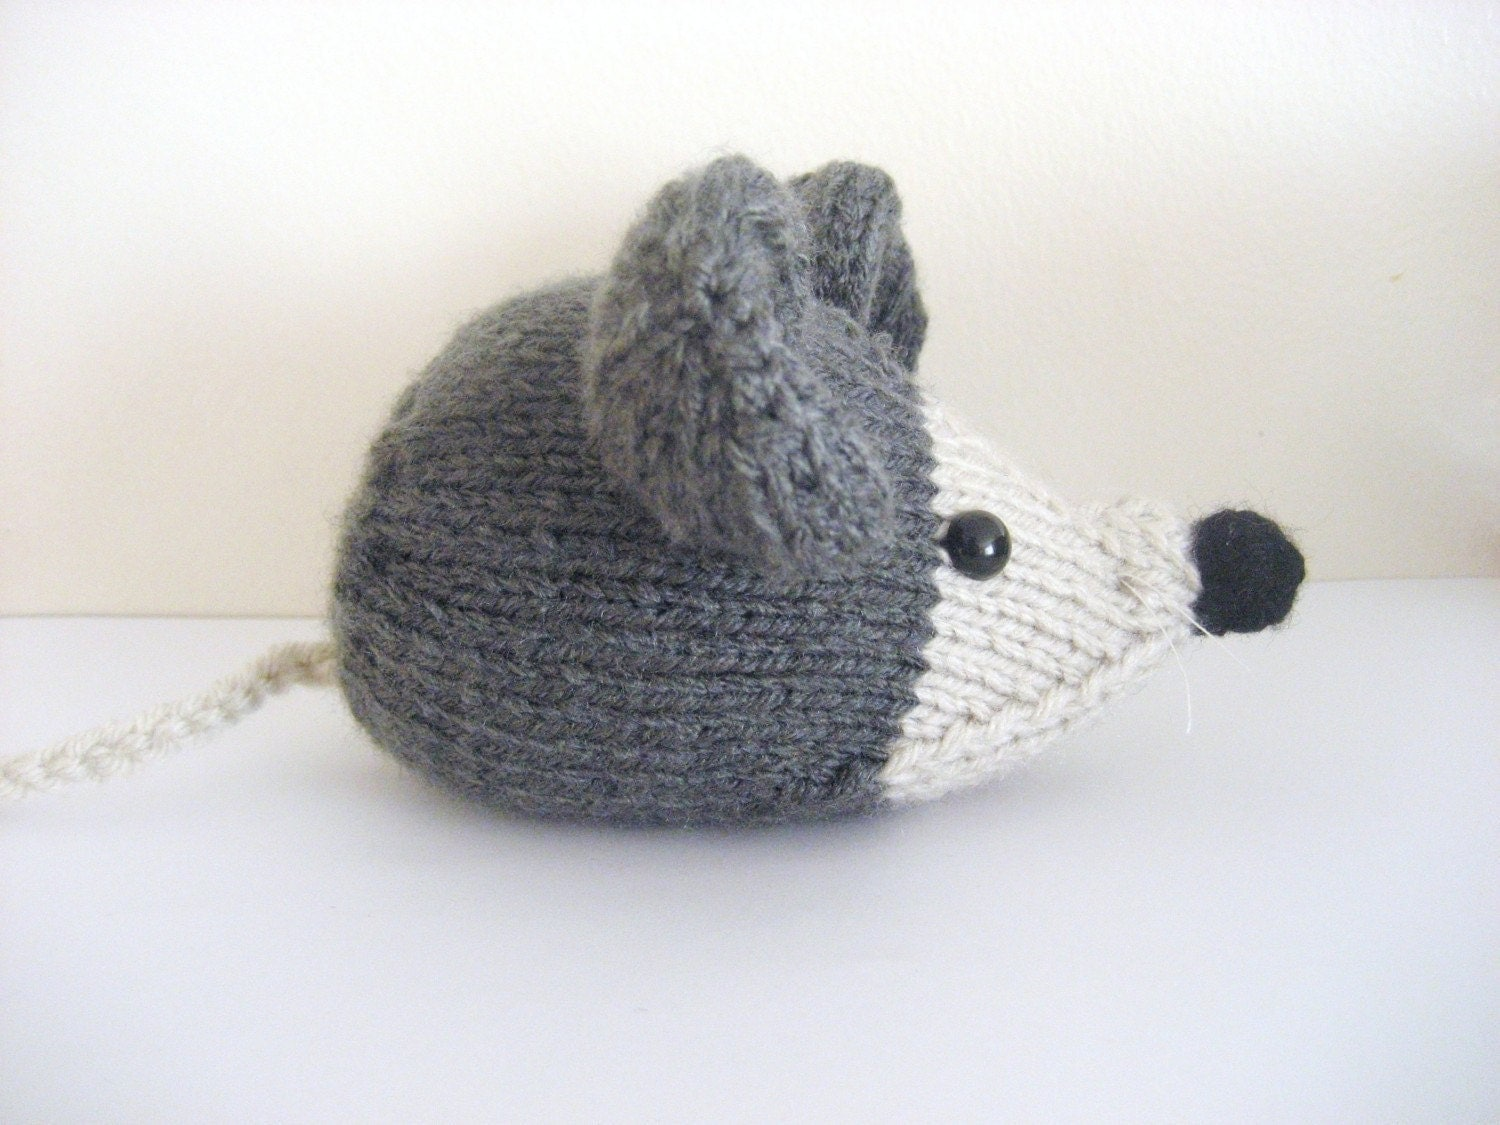 Amigurumi Wool : Amigurumi Knit Little Mouse Pattern Digital Download